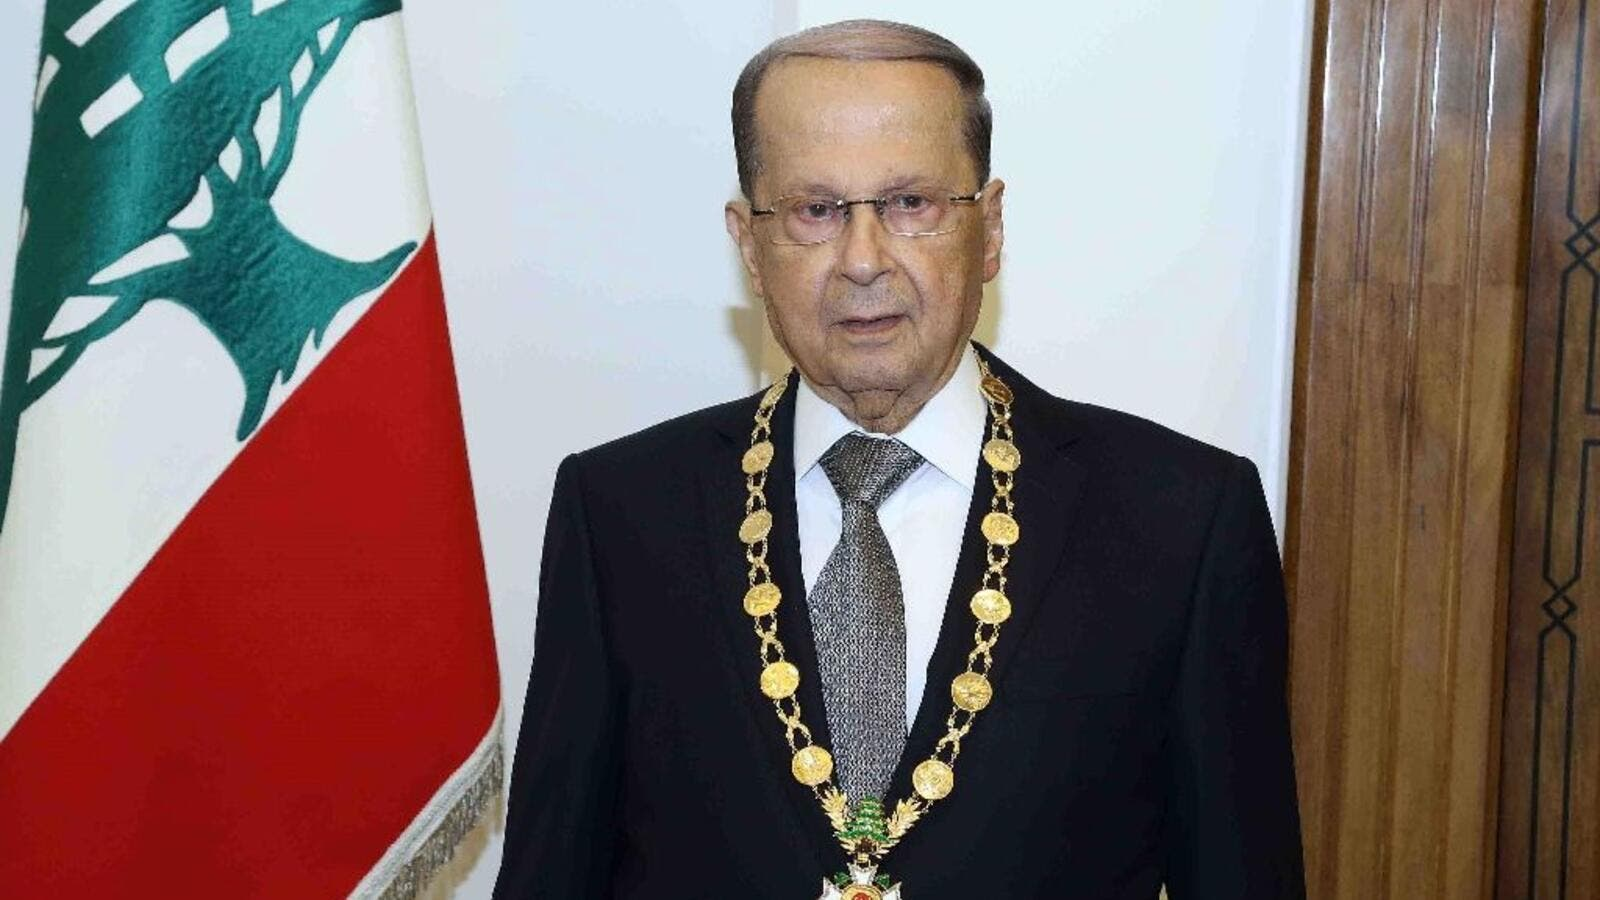 Lebanese President Michel Aoun posing with the presidential medal at the presidential palace of Baabda, east of Beirut on October 31, 2016. (AFP/File)